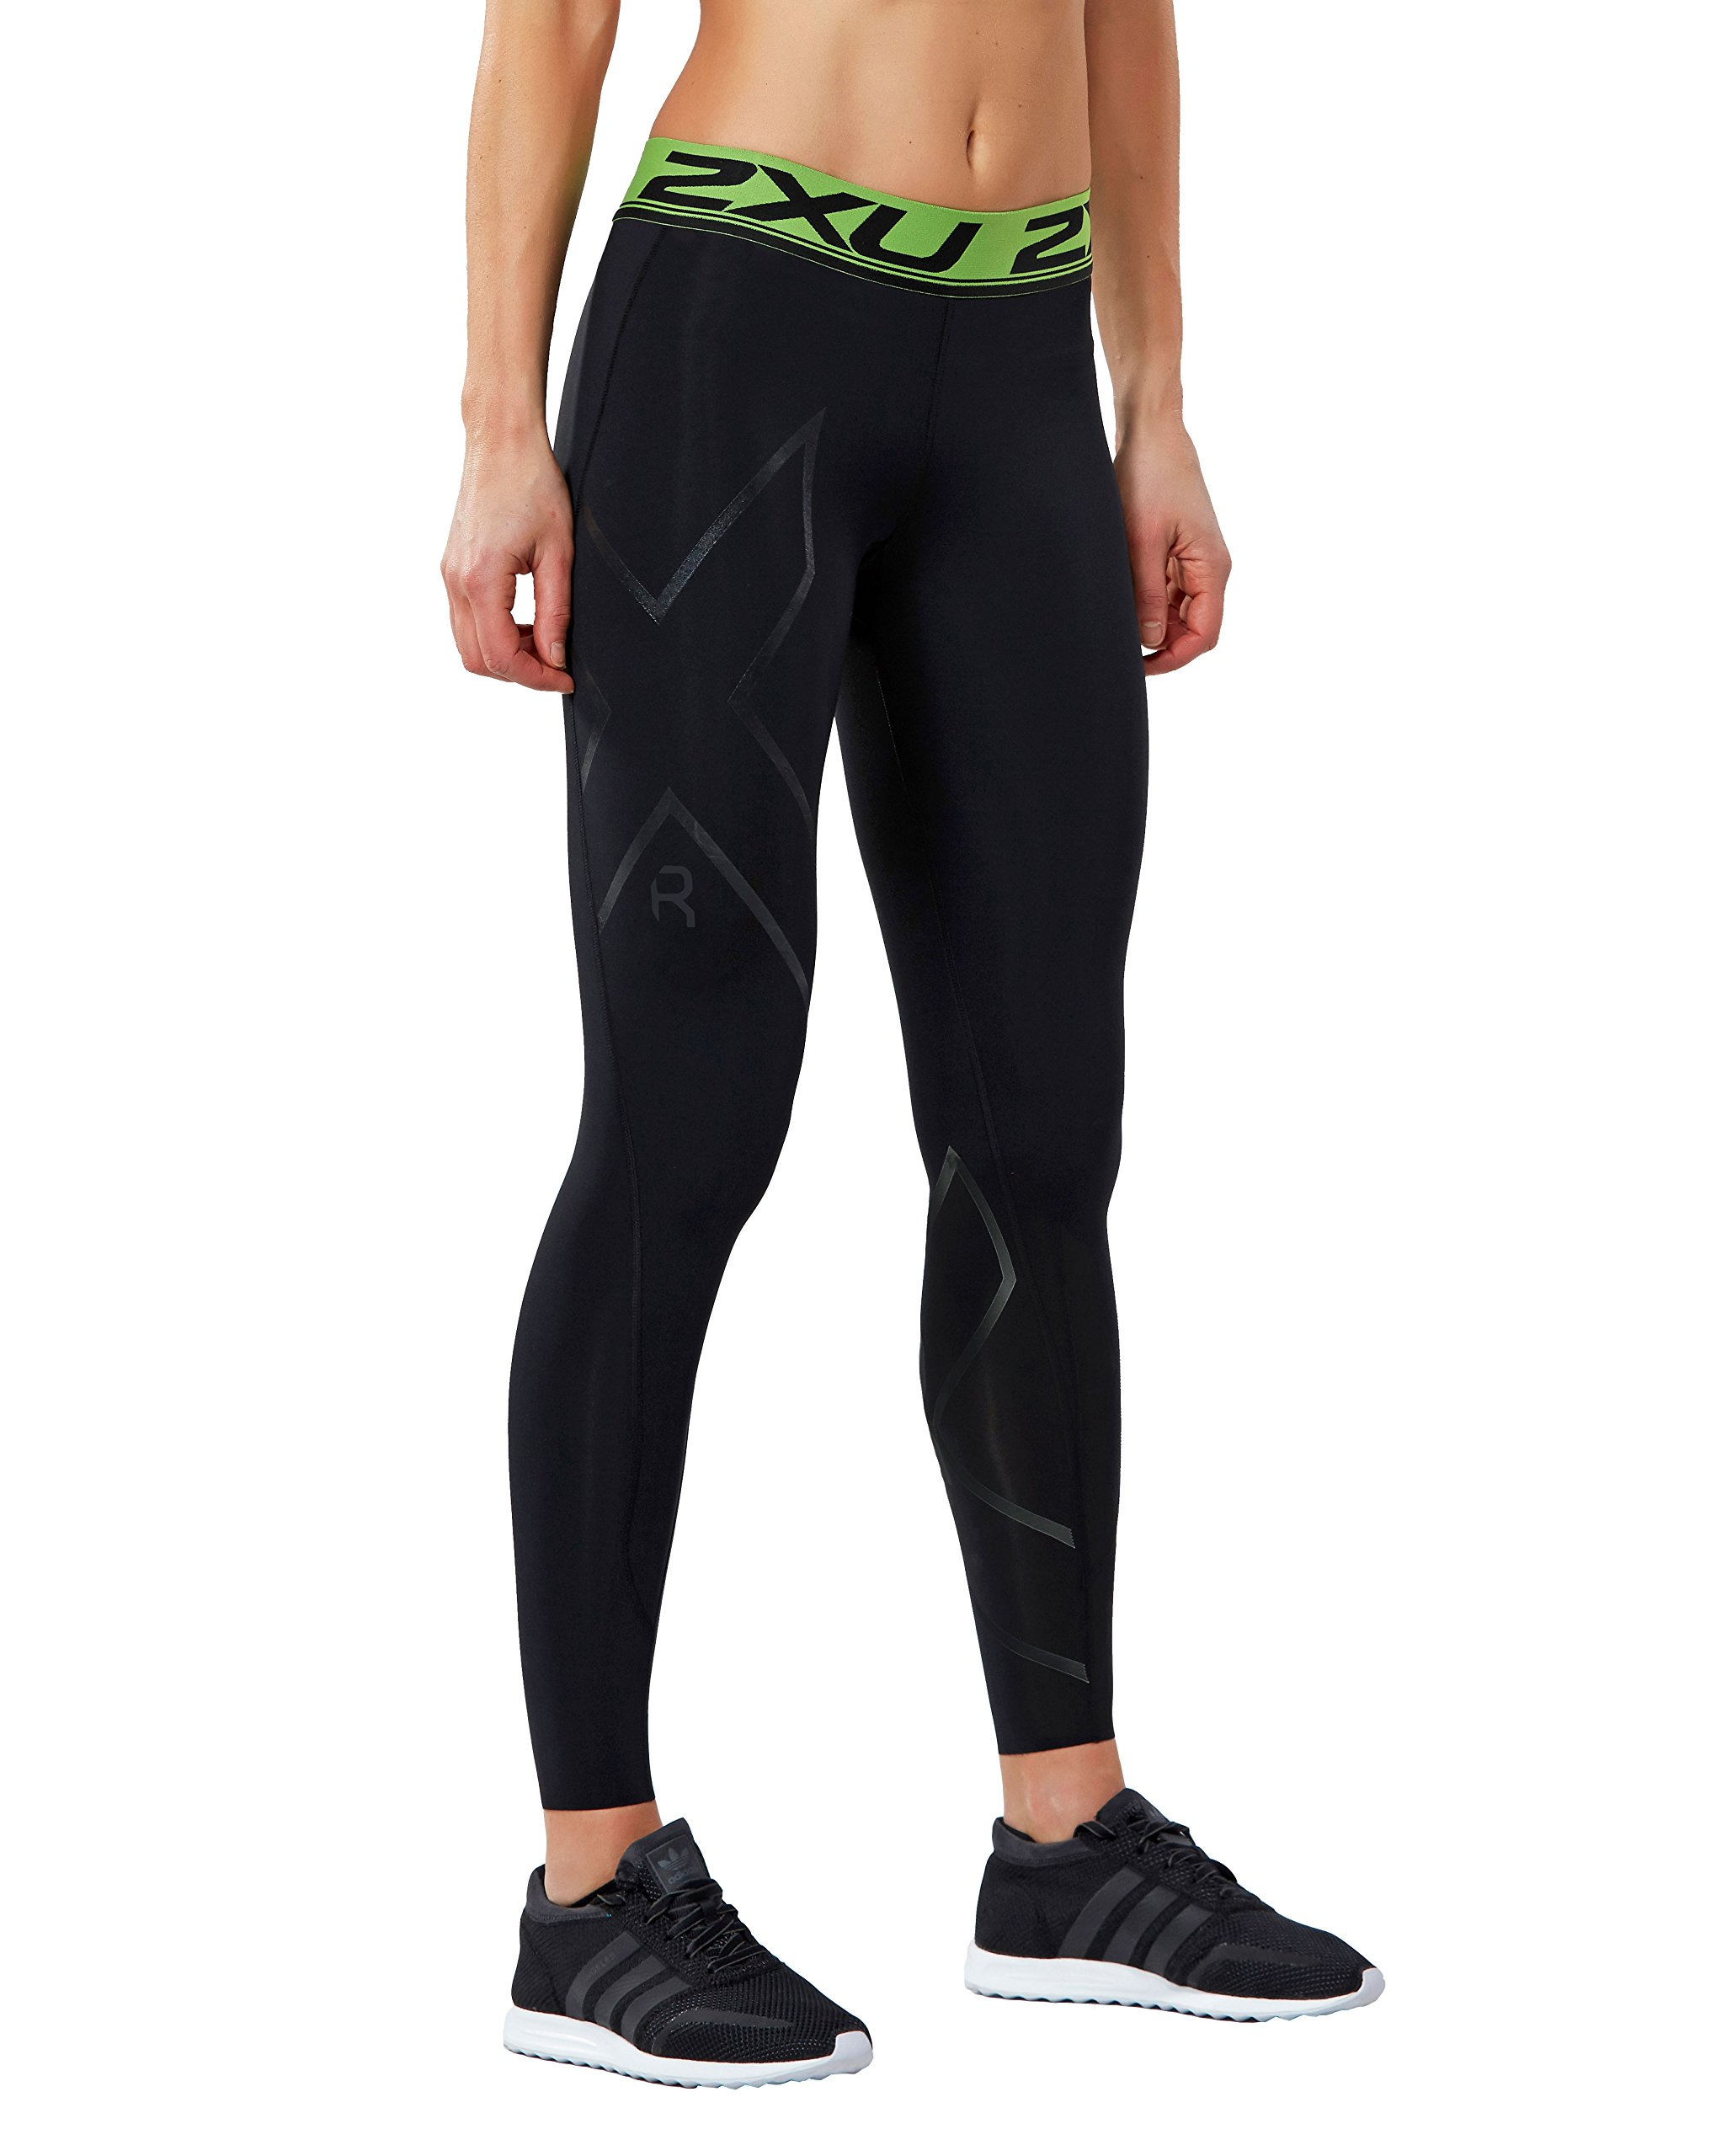 2XU Womens Refresh Recovery Compression